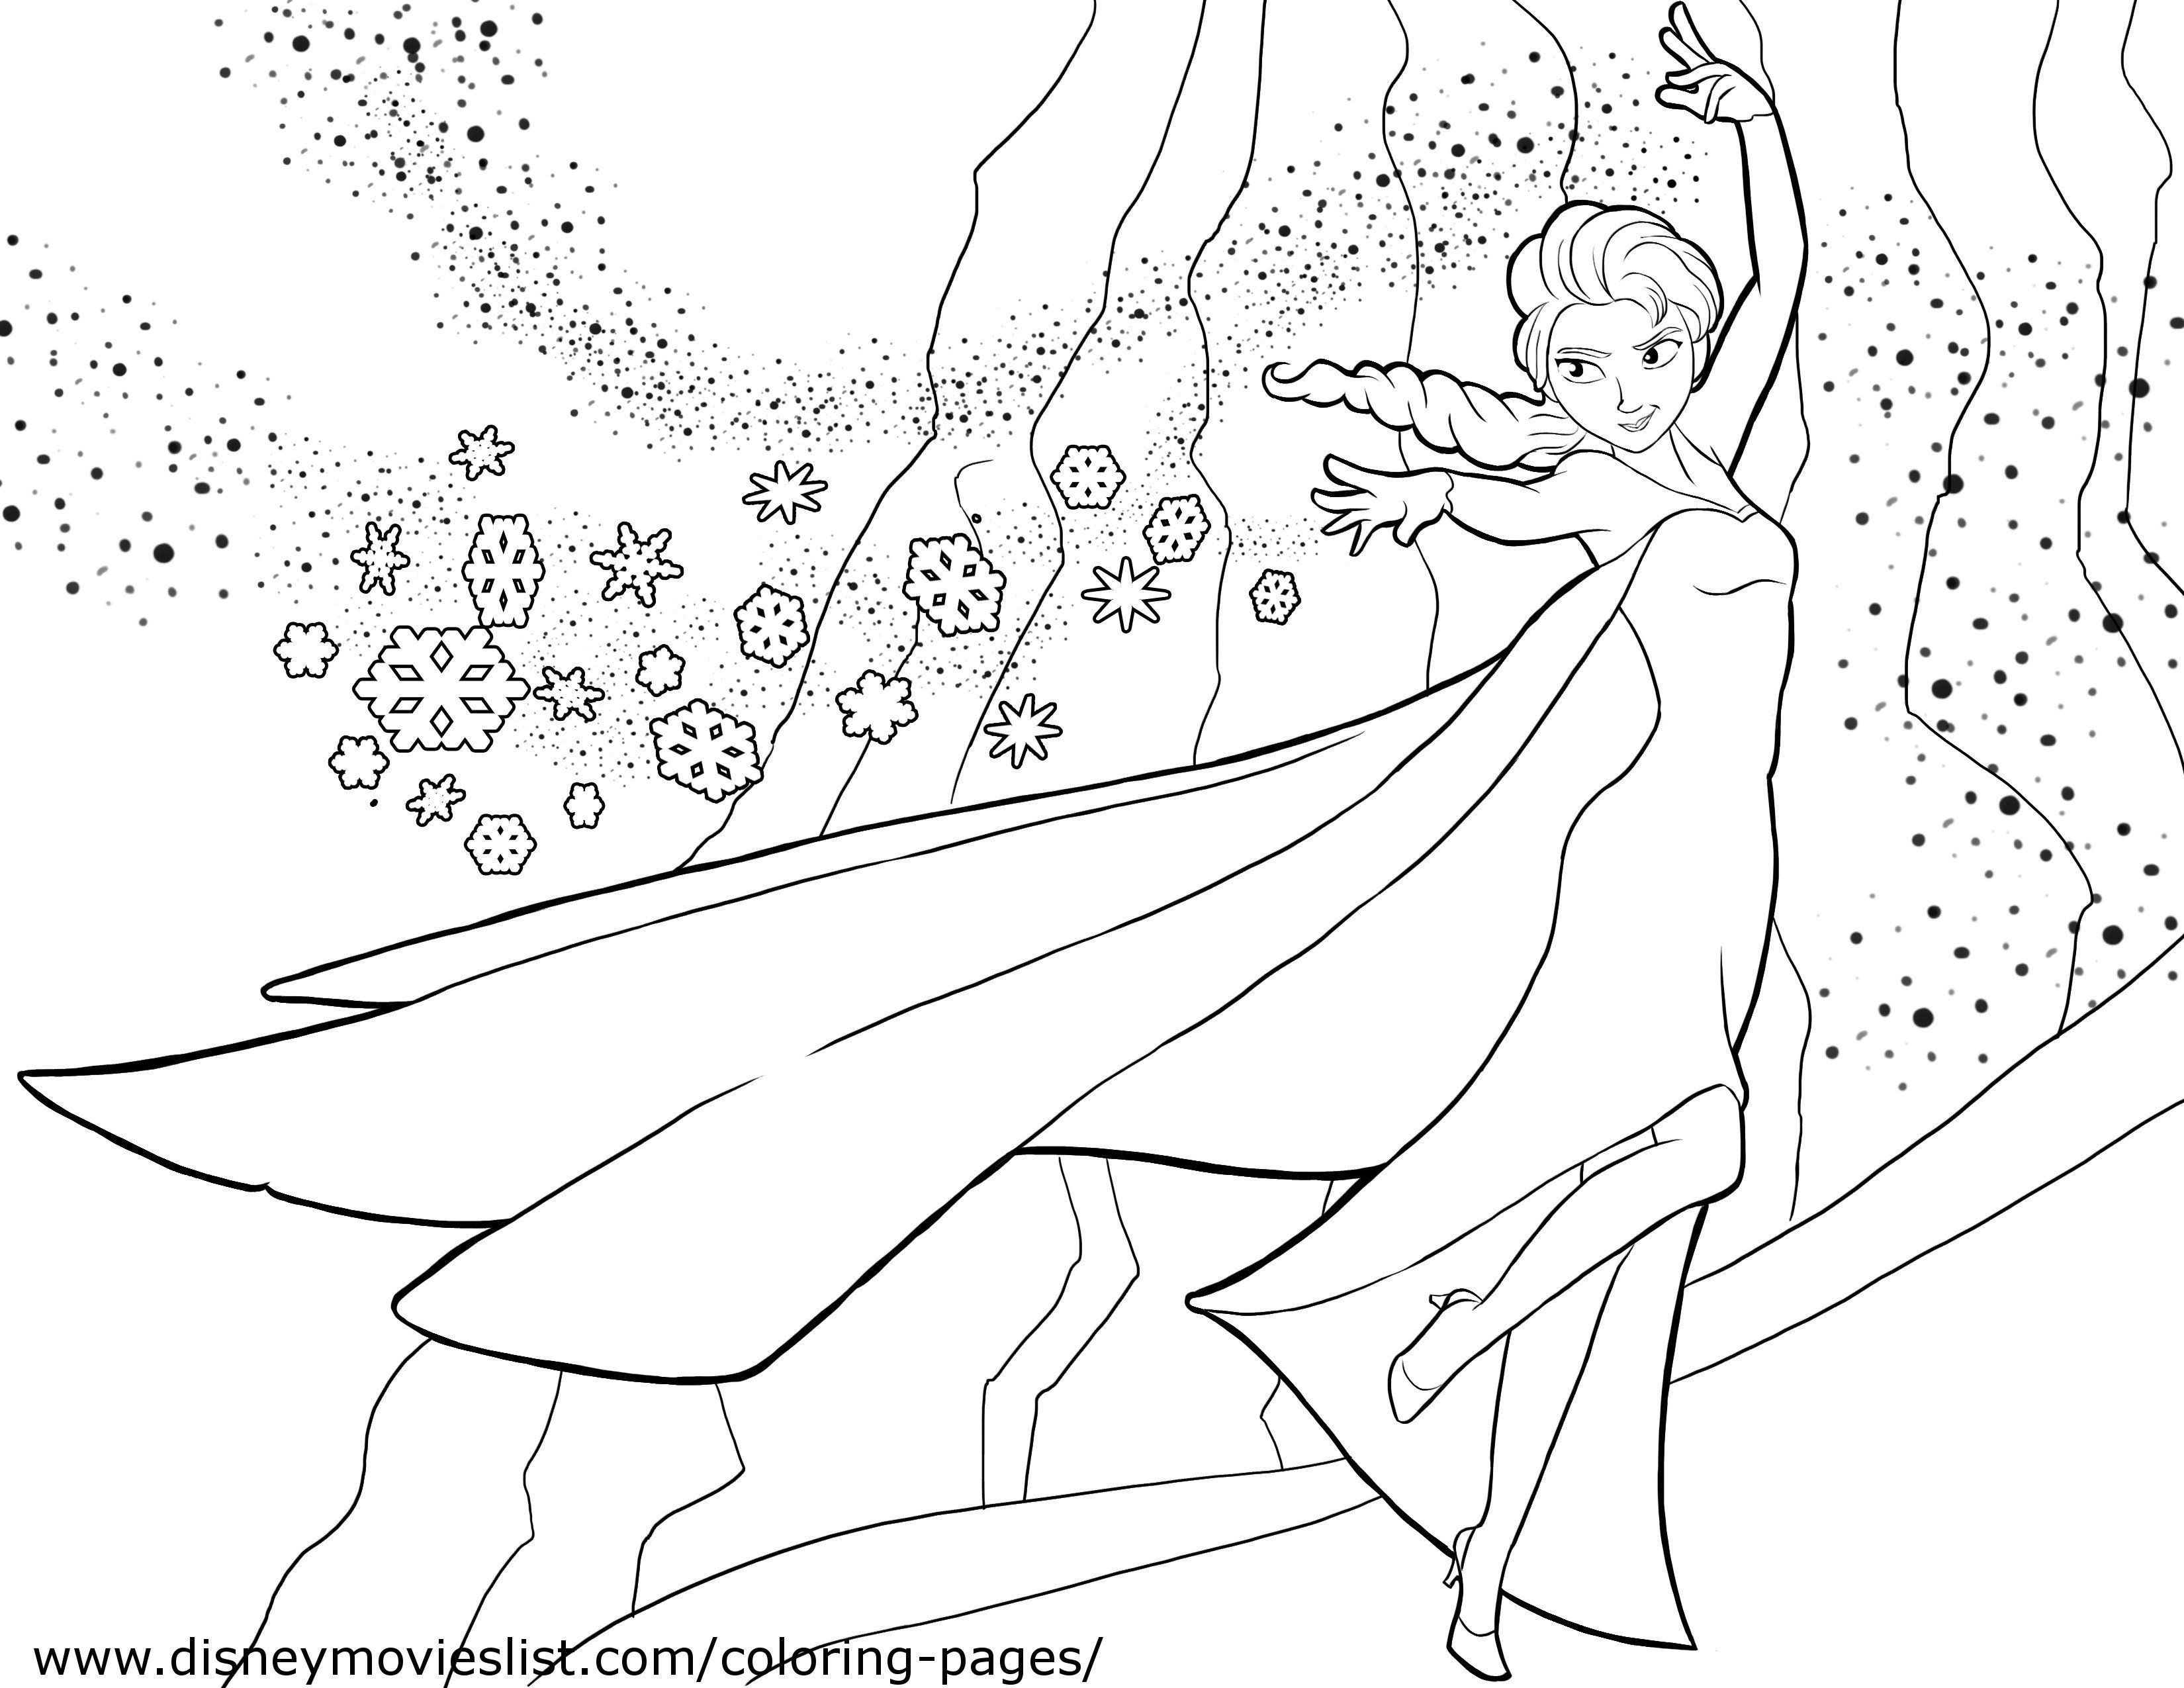 Disney Coloring Pages Pdf Luxury Coloring Pages Elsa Coloring Pages Patinsudouest Frozen Coloring Pages Frozen Coloring Elsa Coloring Pages